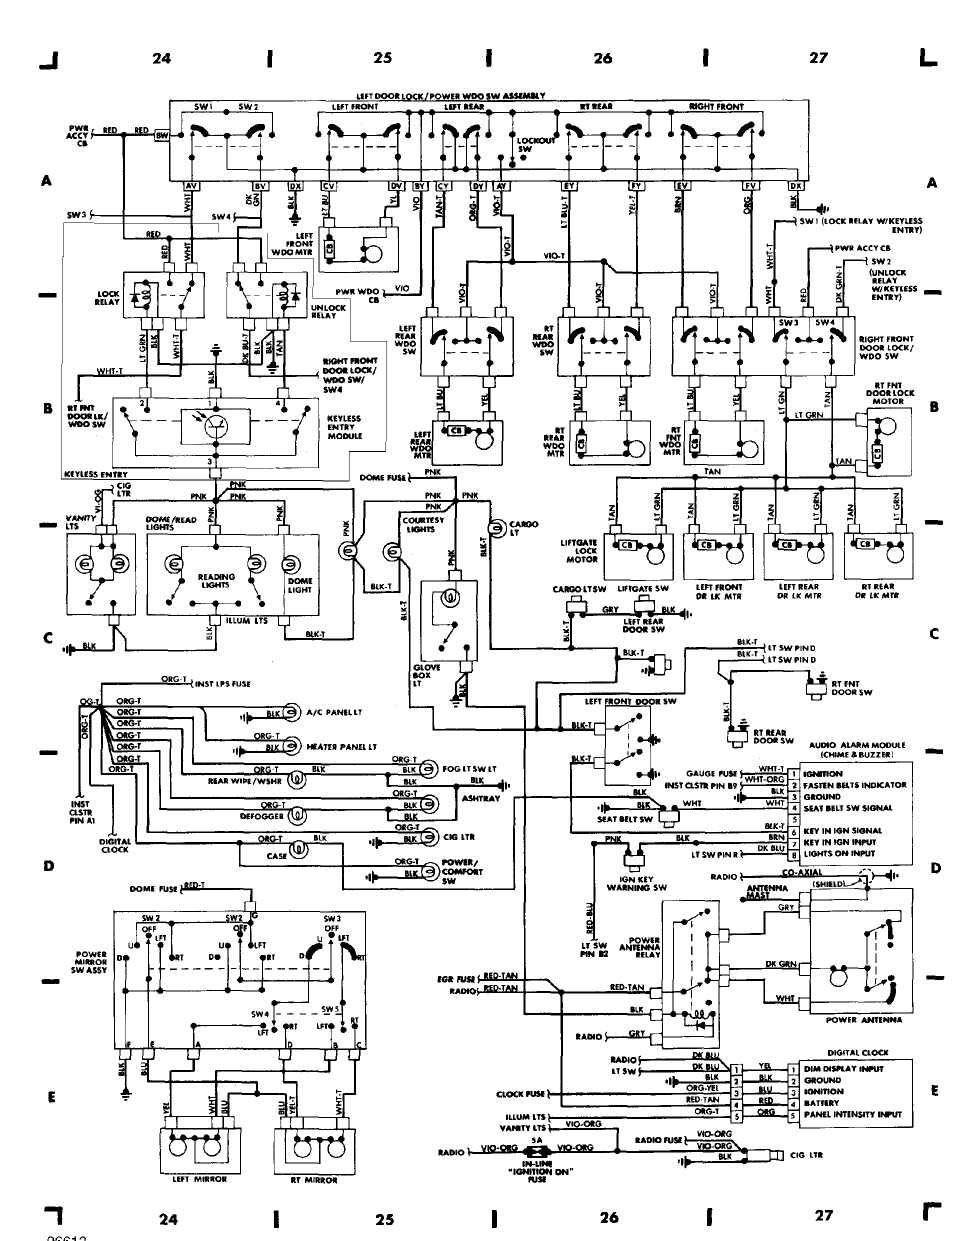 wiring_diagrams_html_61f5e0ad wiring diagrams 1984 1991 jeep cherokee (xj) jeep 1998 jeep wrangler fuse box diagram at bayanpartner.co